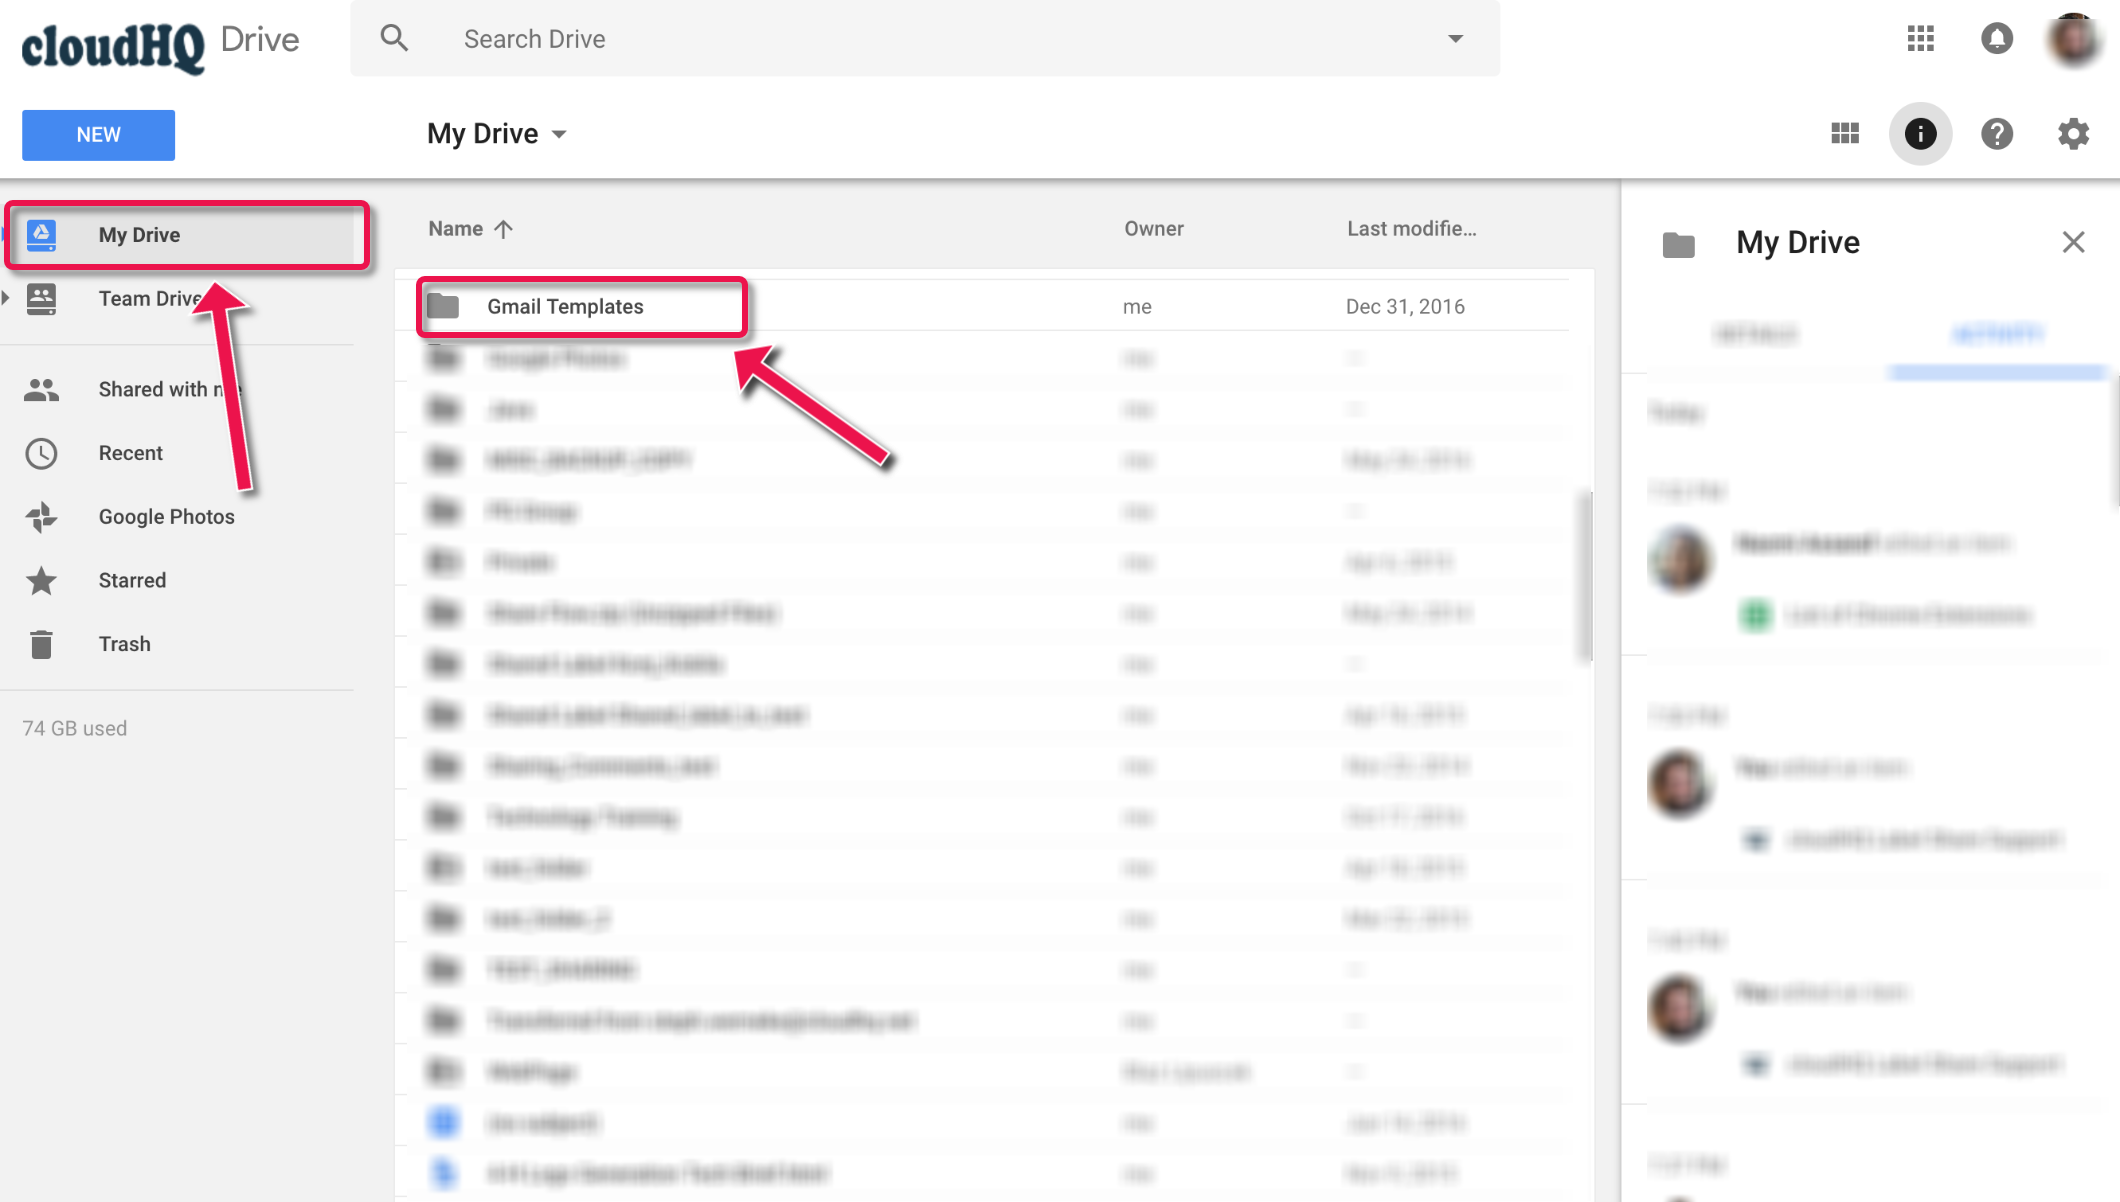 How To Edit And Modify Gmail Templates In Google Drive Cloudhq Support